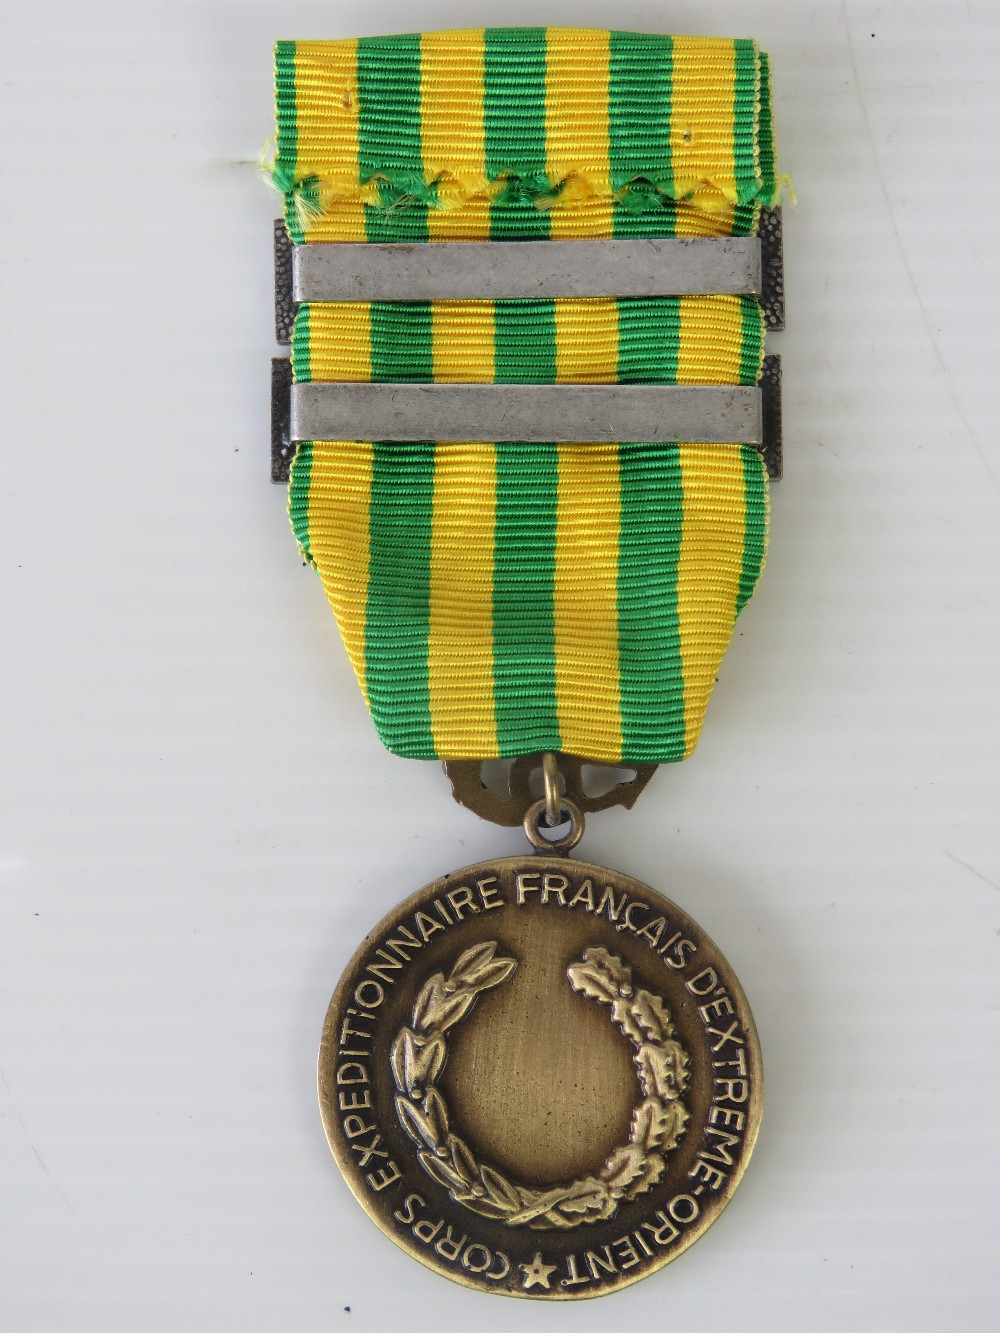 Lot 5 - A French Indo-China (Dien Bien Phu) medal c1954 with ribbon, non-sate issued private manufacture.